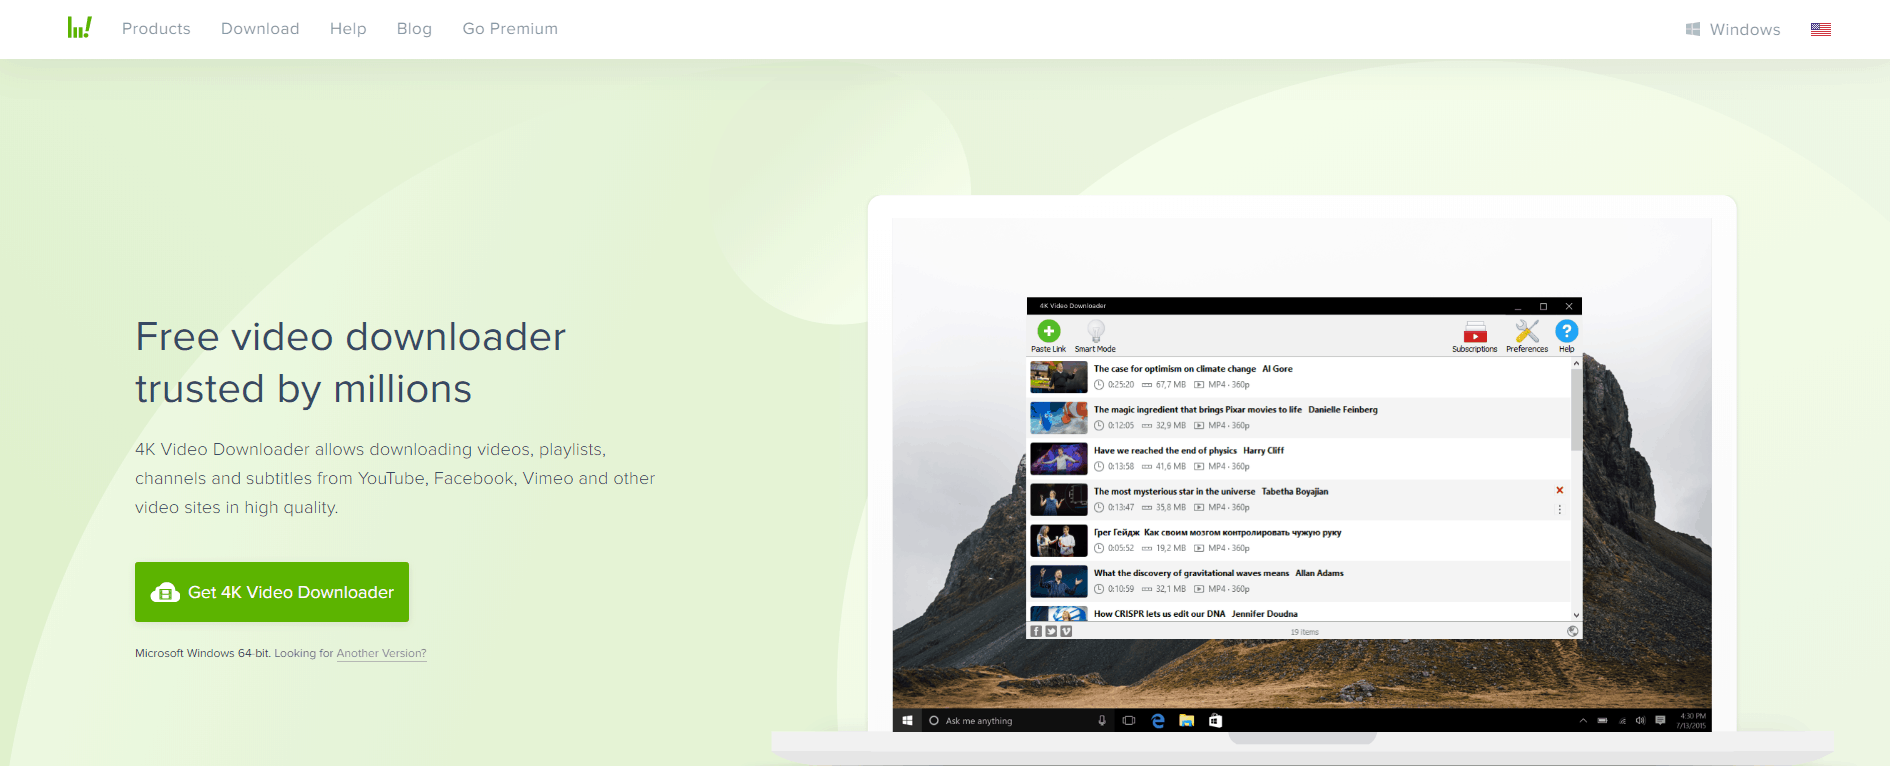 4K Video Downloader Homepage Screenshot